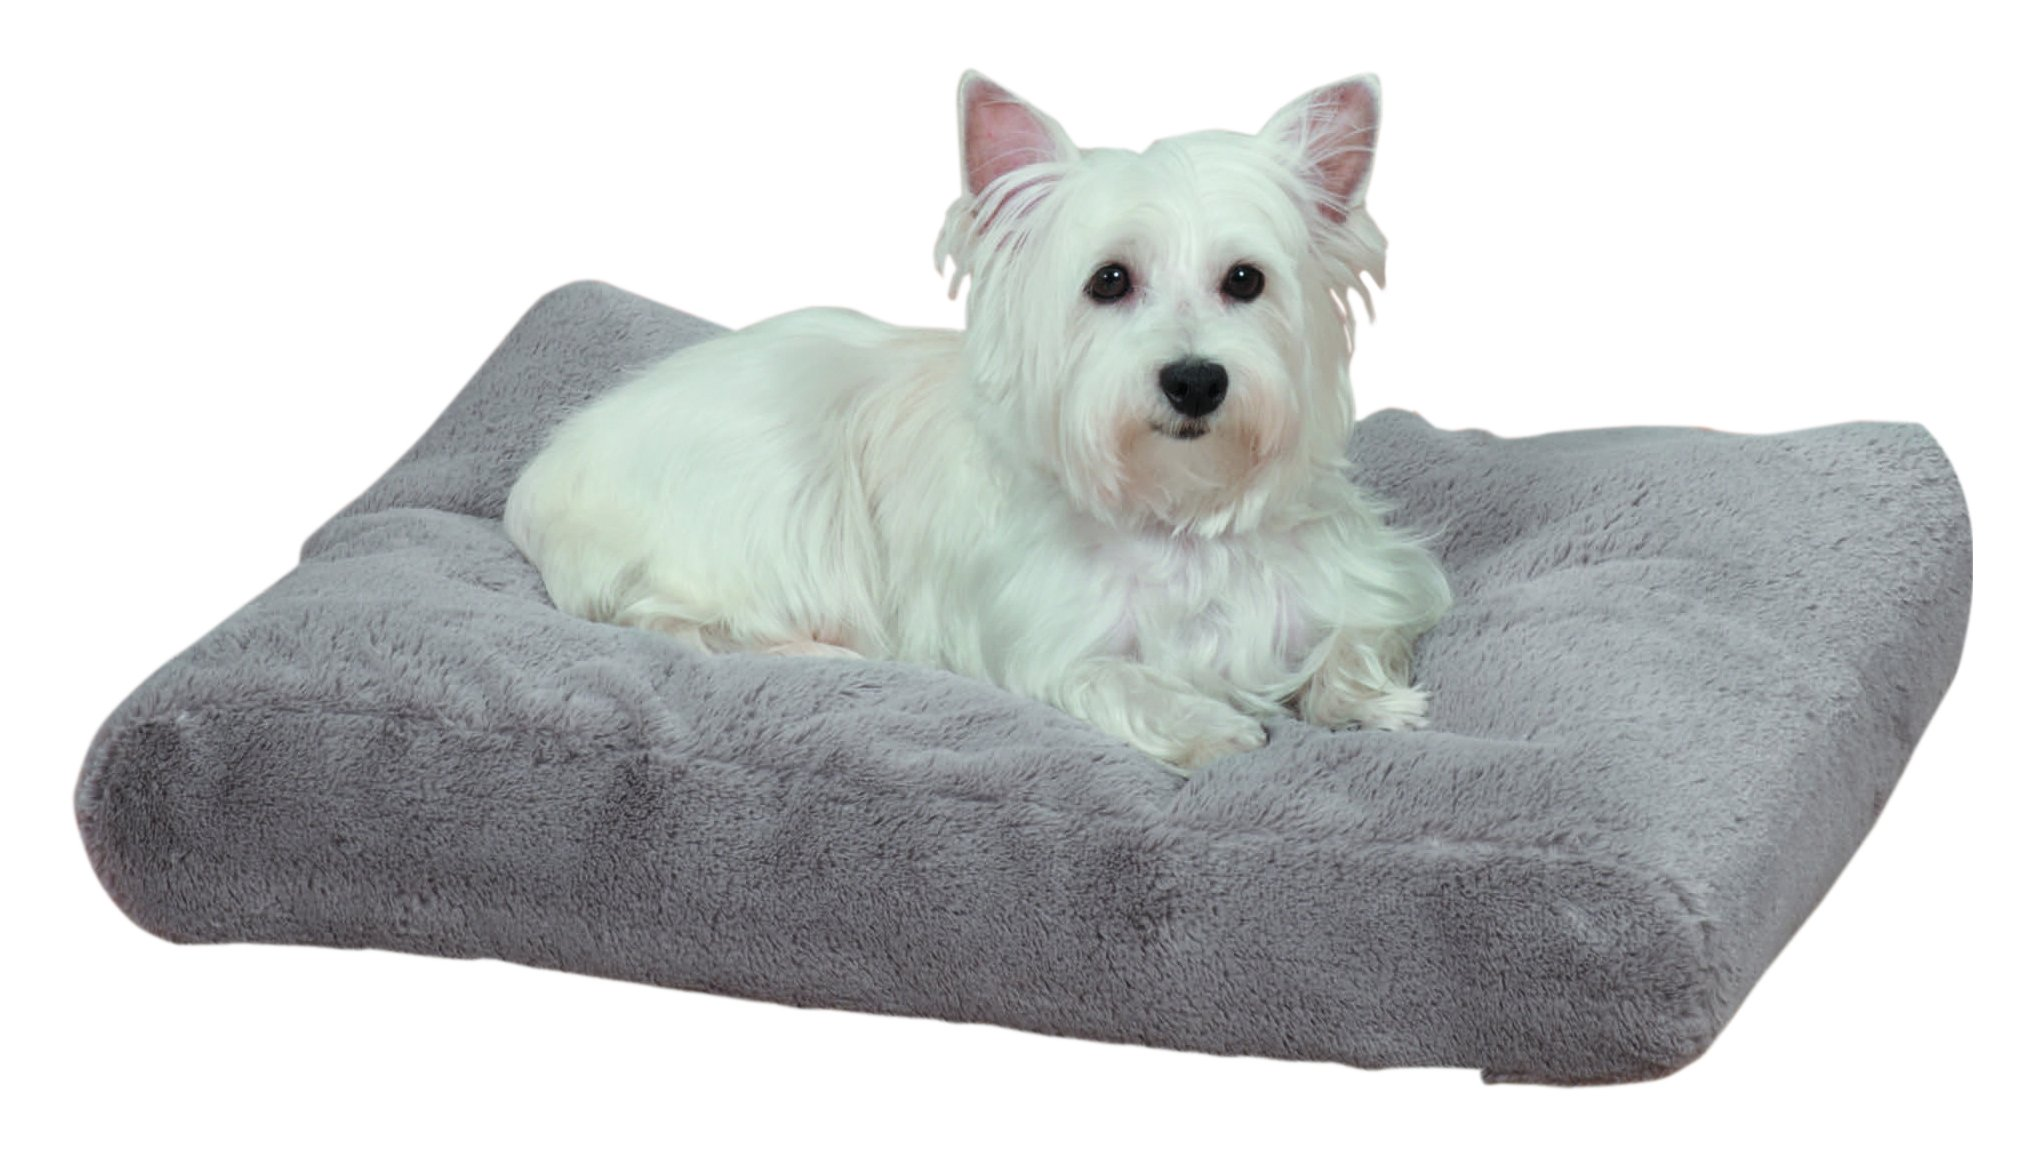 Slumber Pet ThermaPet Burrow Beds-Innovative, Lofty, and Comfortable Warming Beds for Dogs and Cats